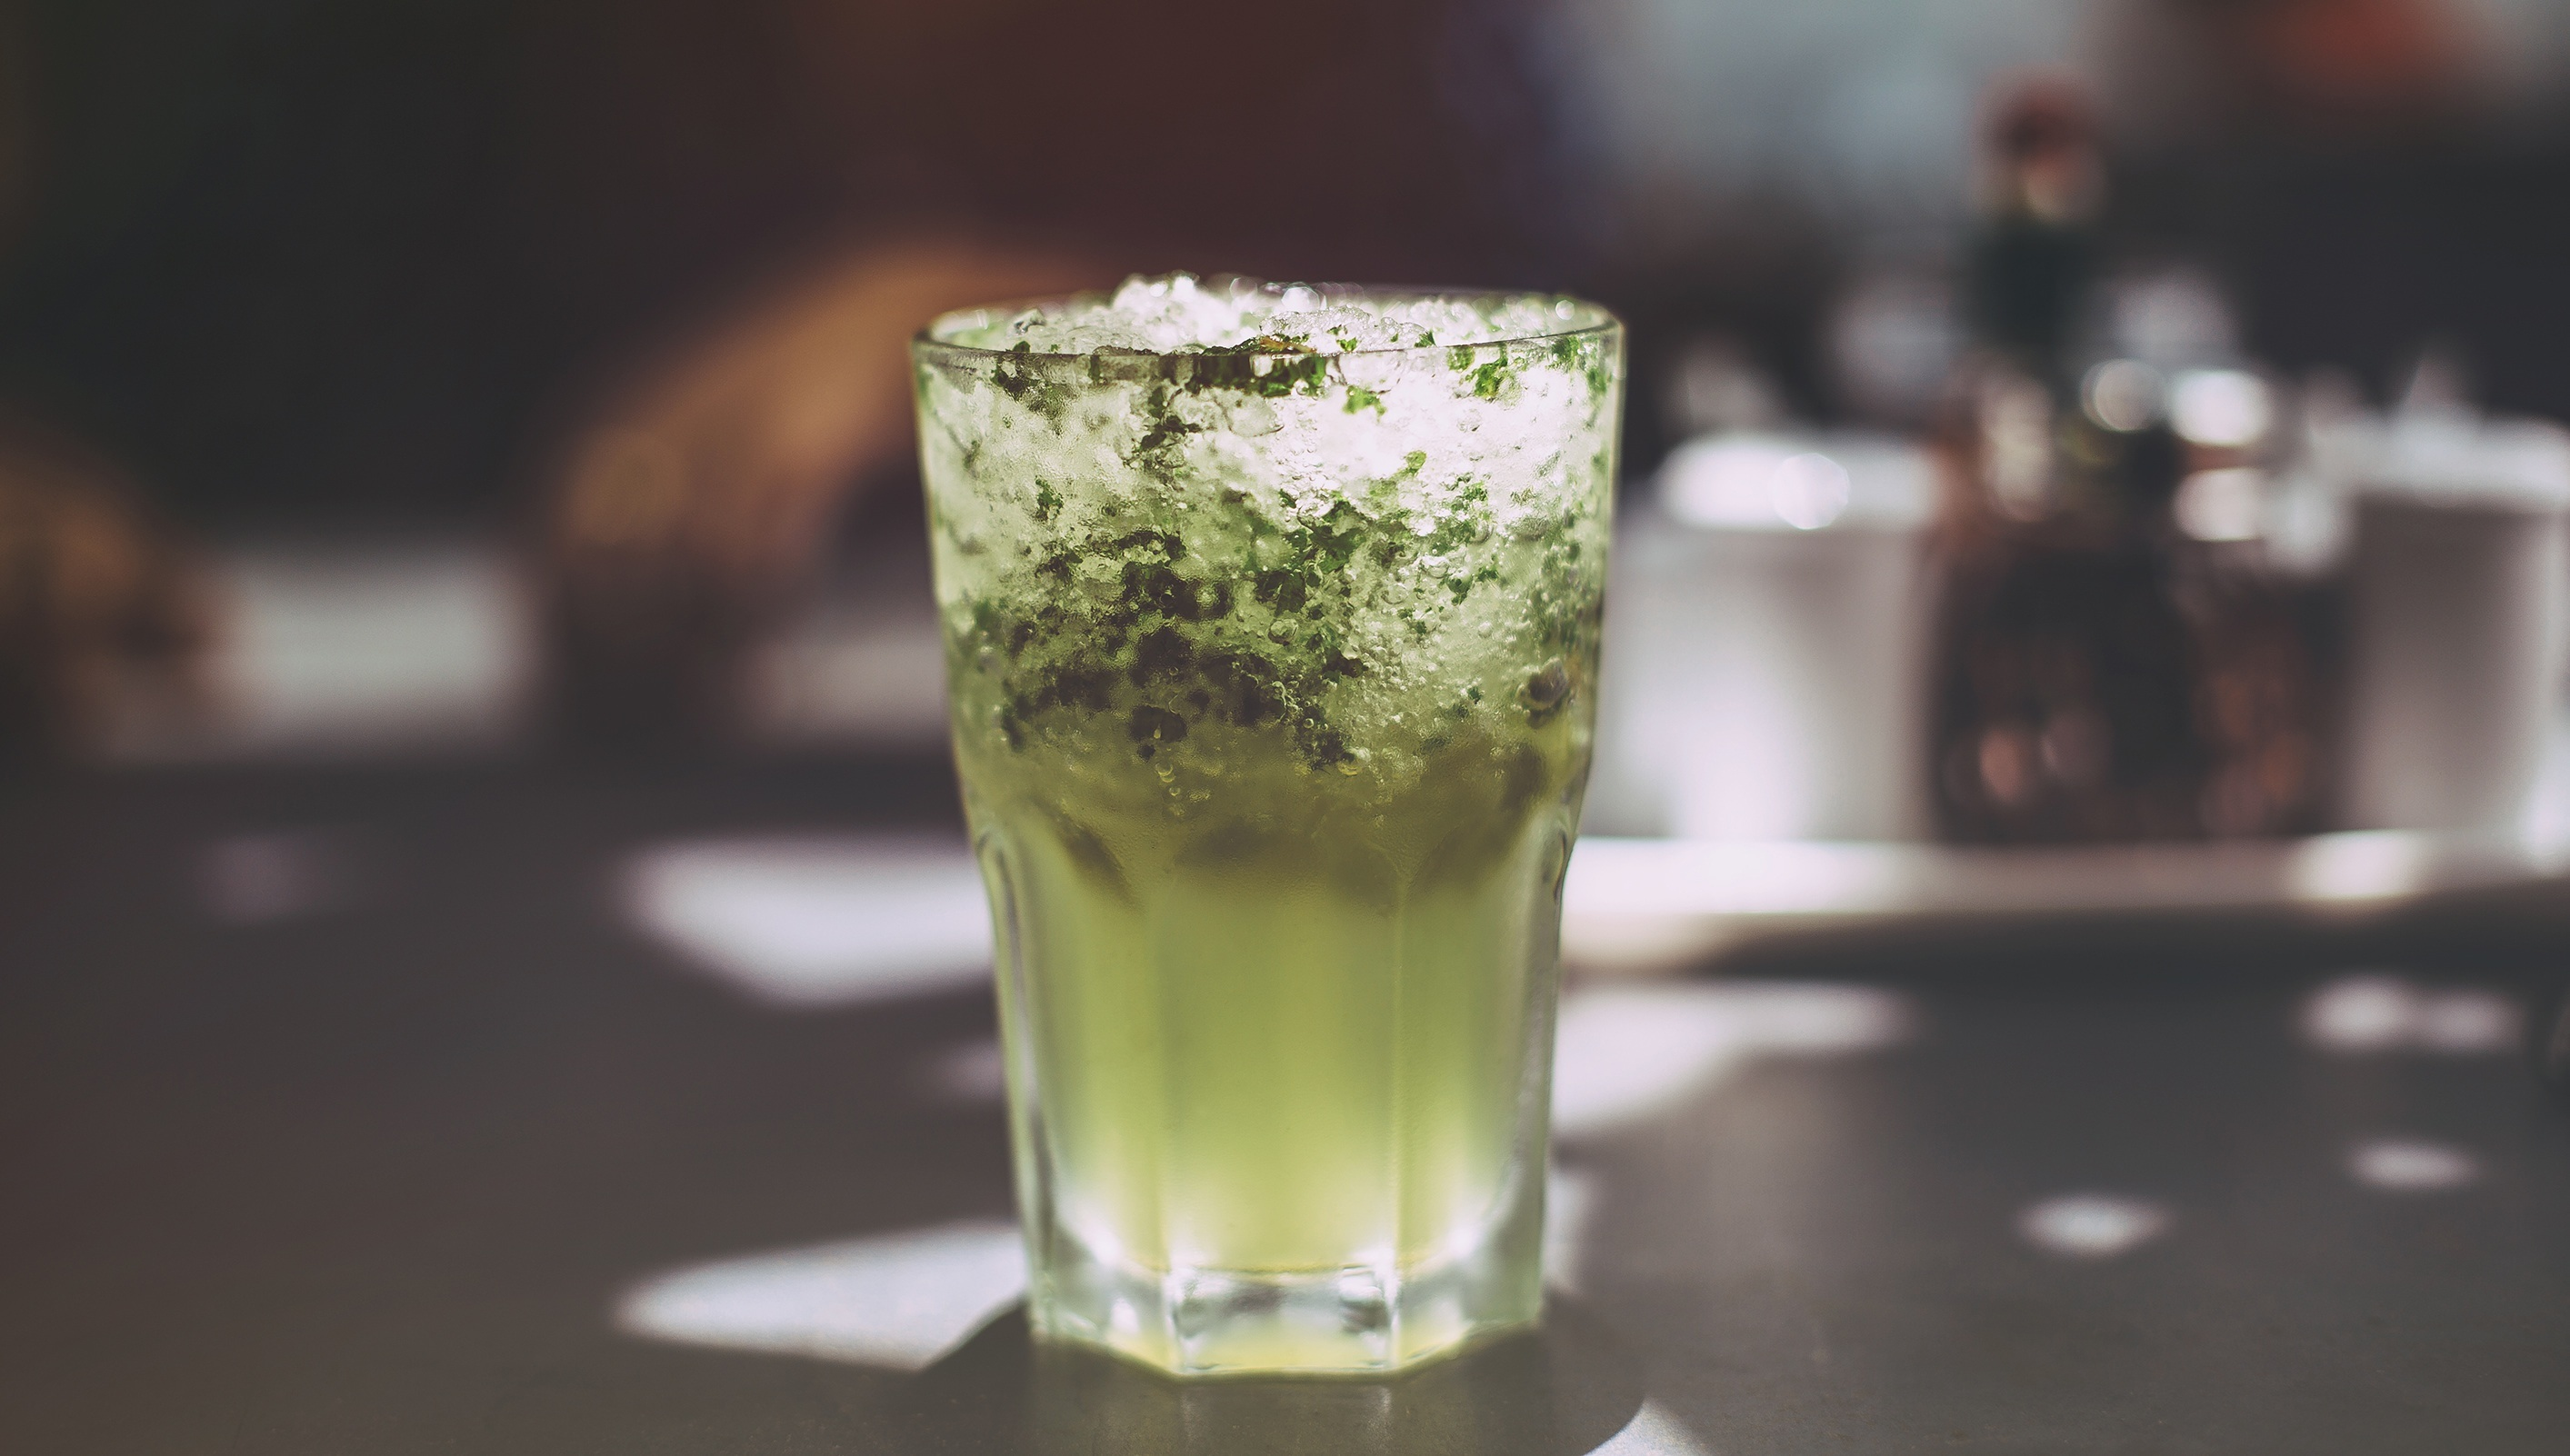 A close up image of a classic Mojito cocktail